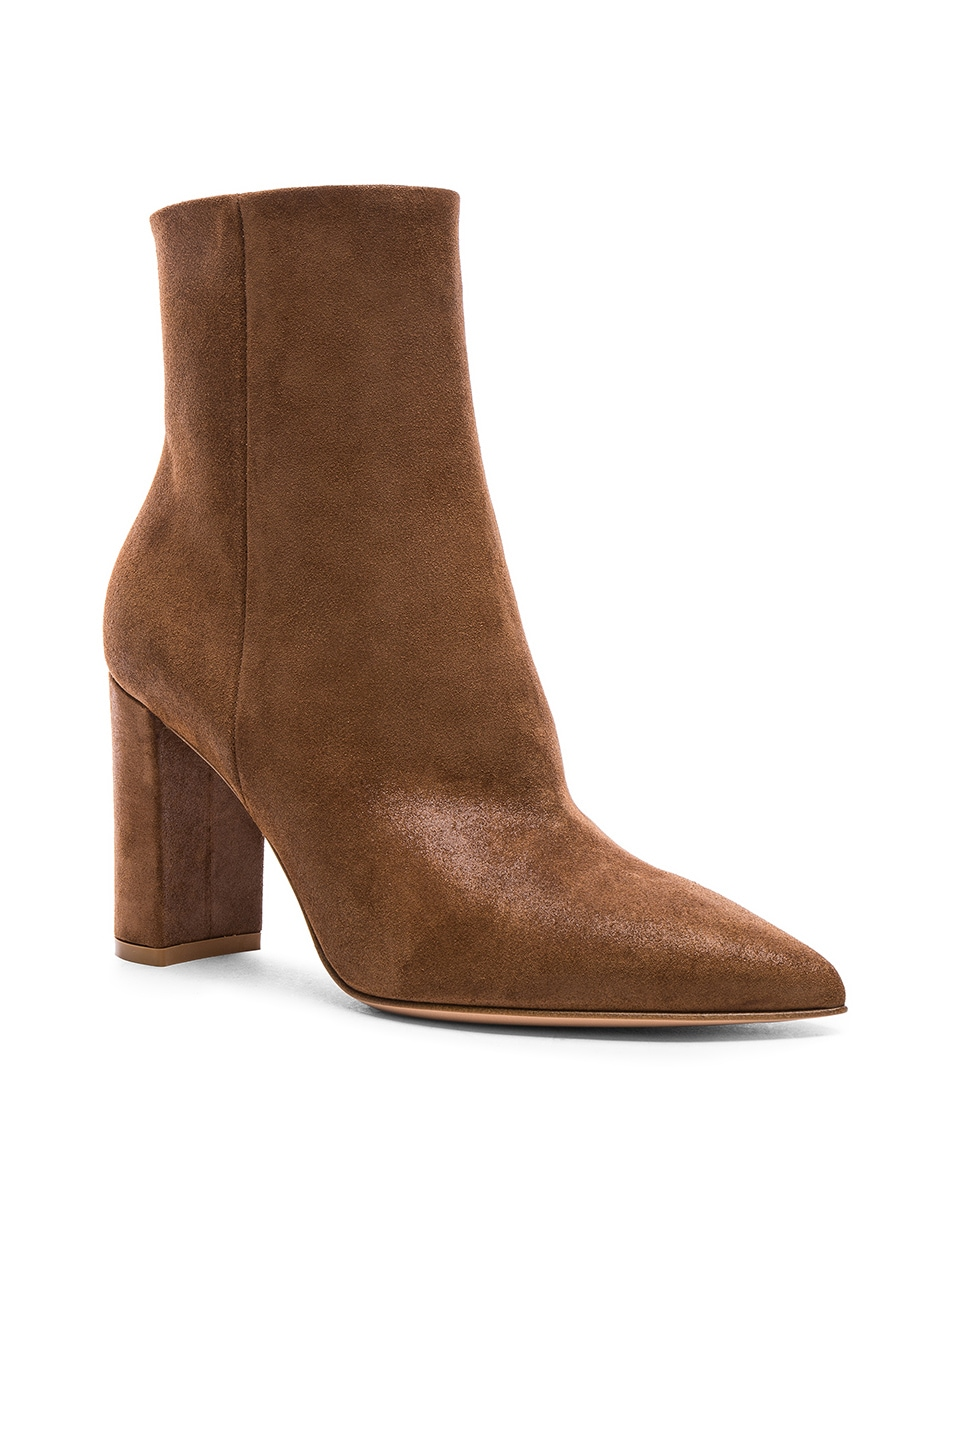 Image 2 of Gianvito Rossi Suede Piper Ankle Boots in Texas